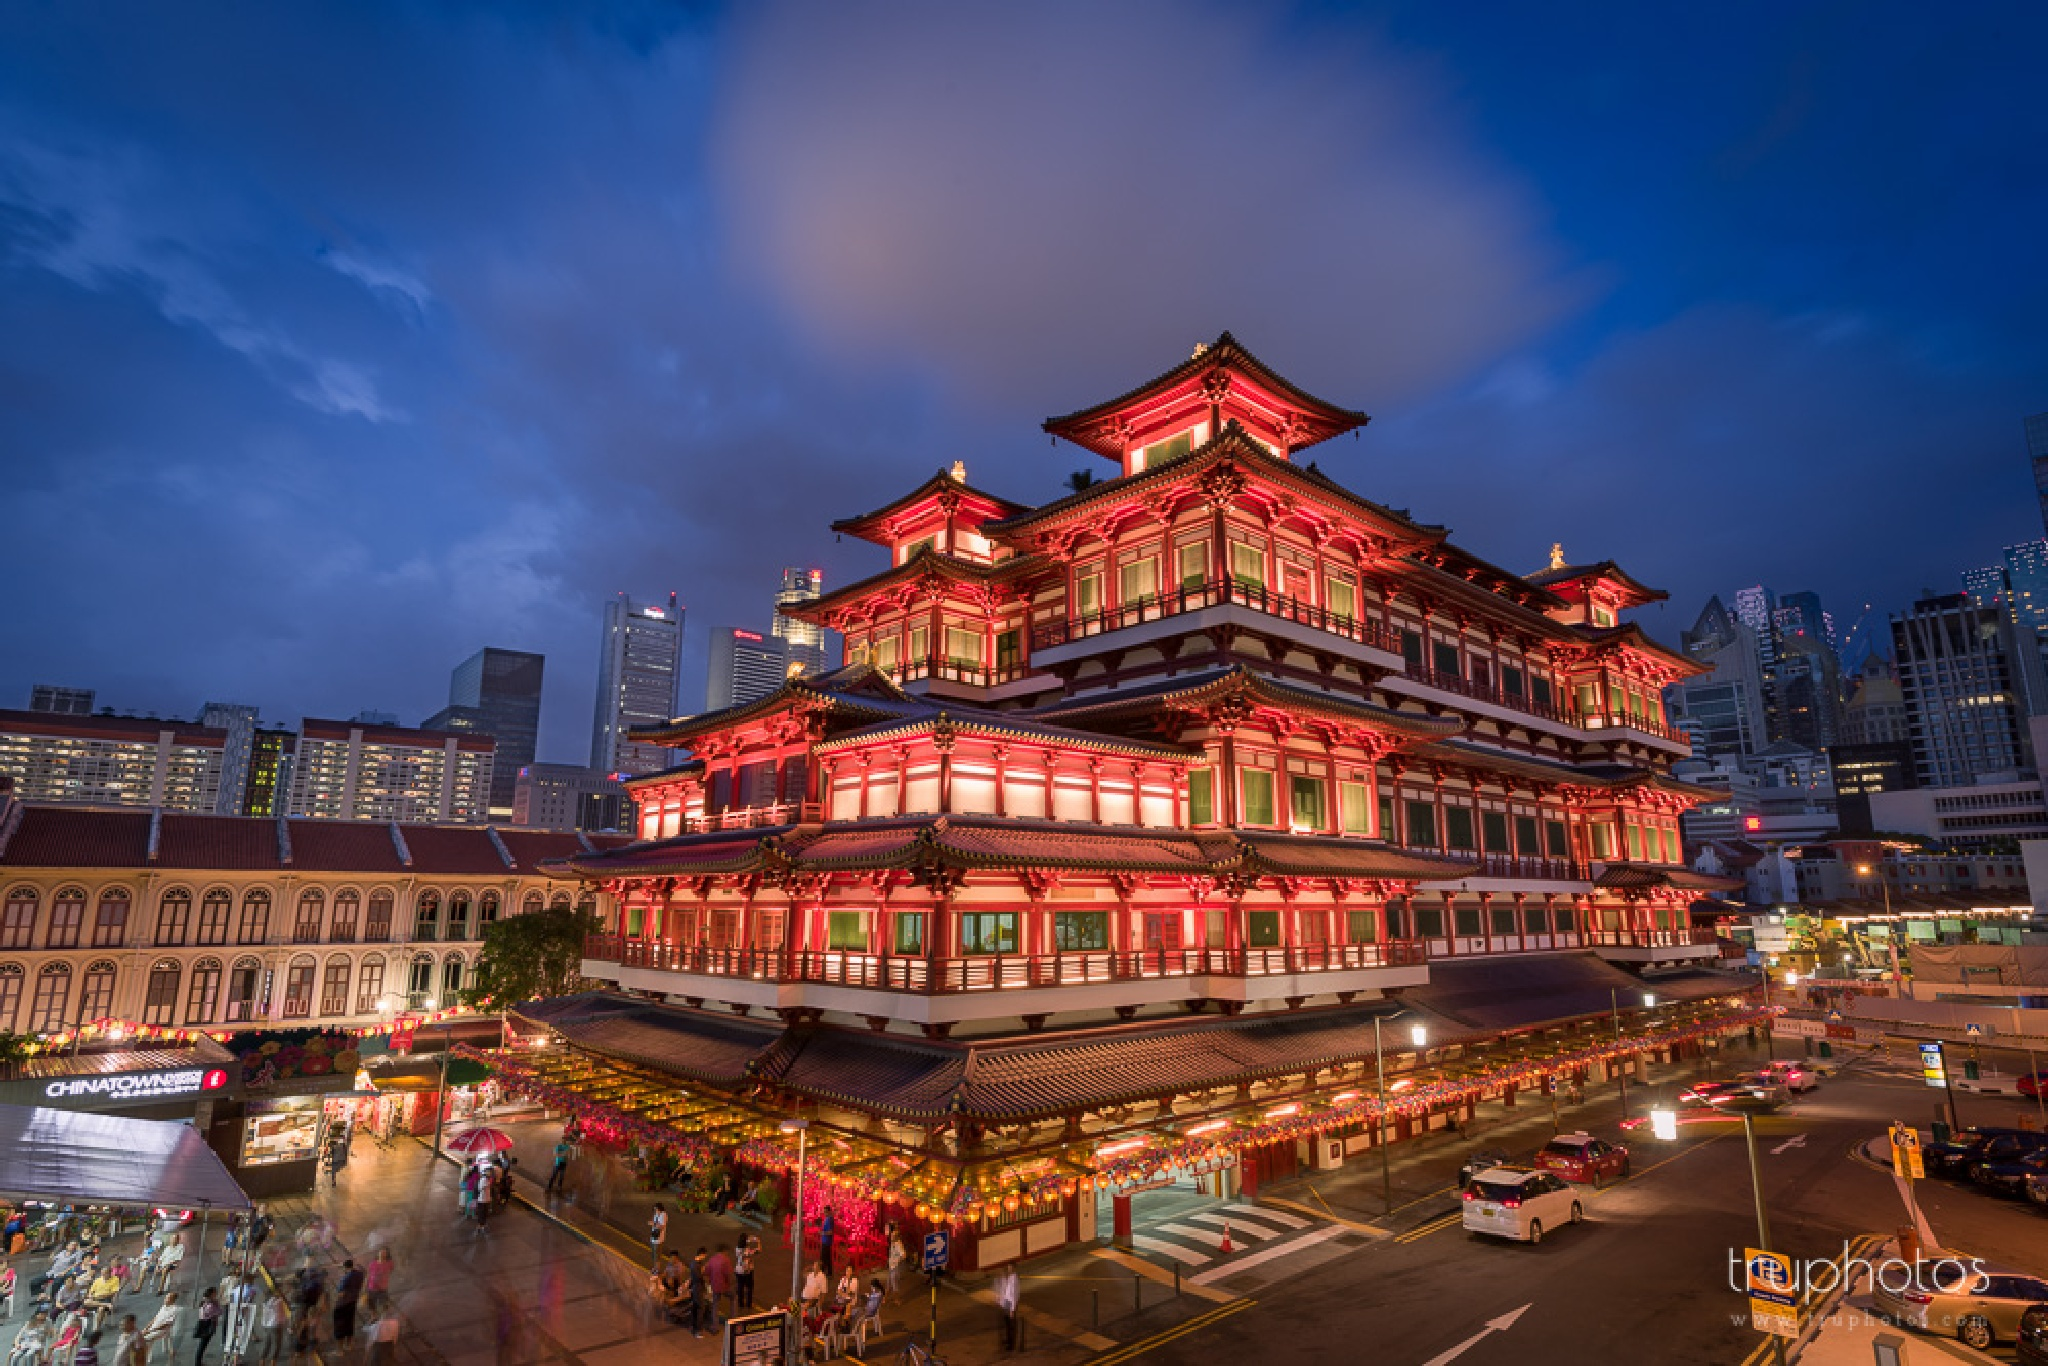 Chinatown landmark | Singapore Travel Photographer by truphotos